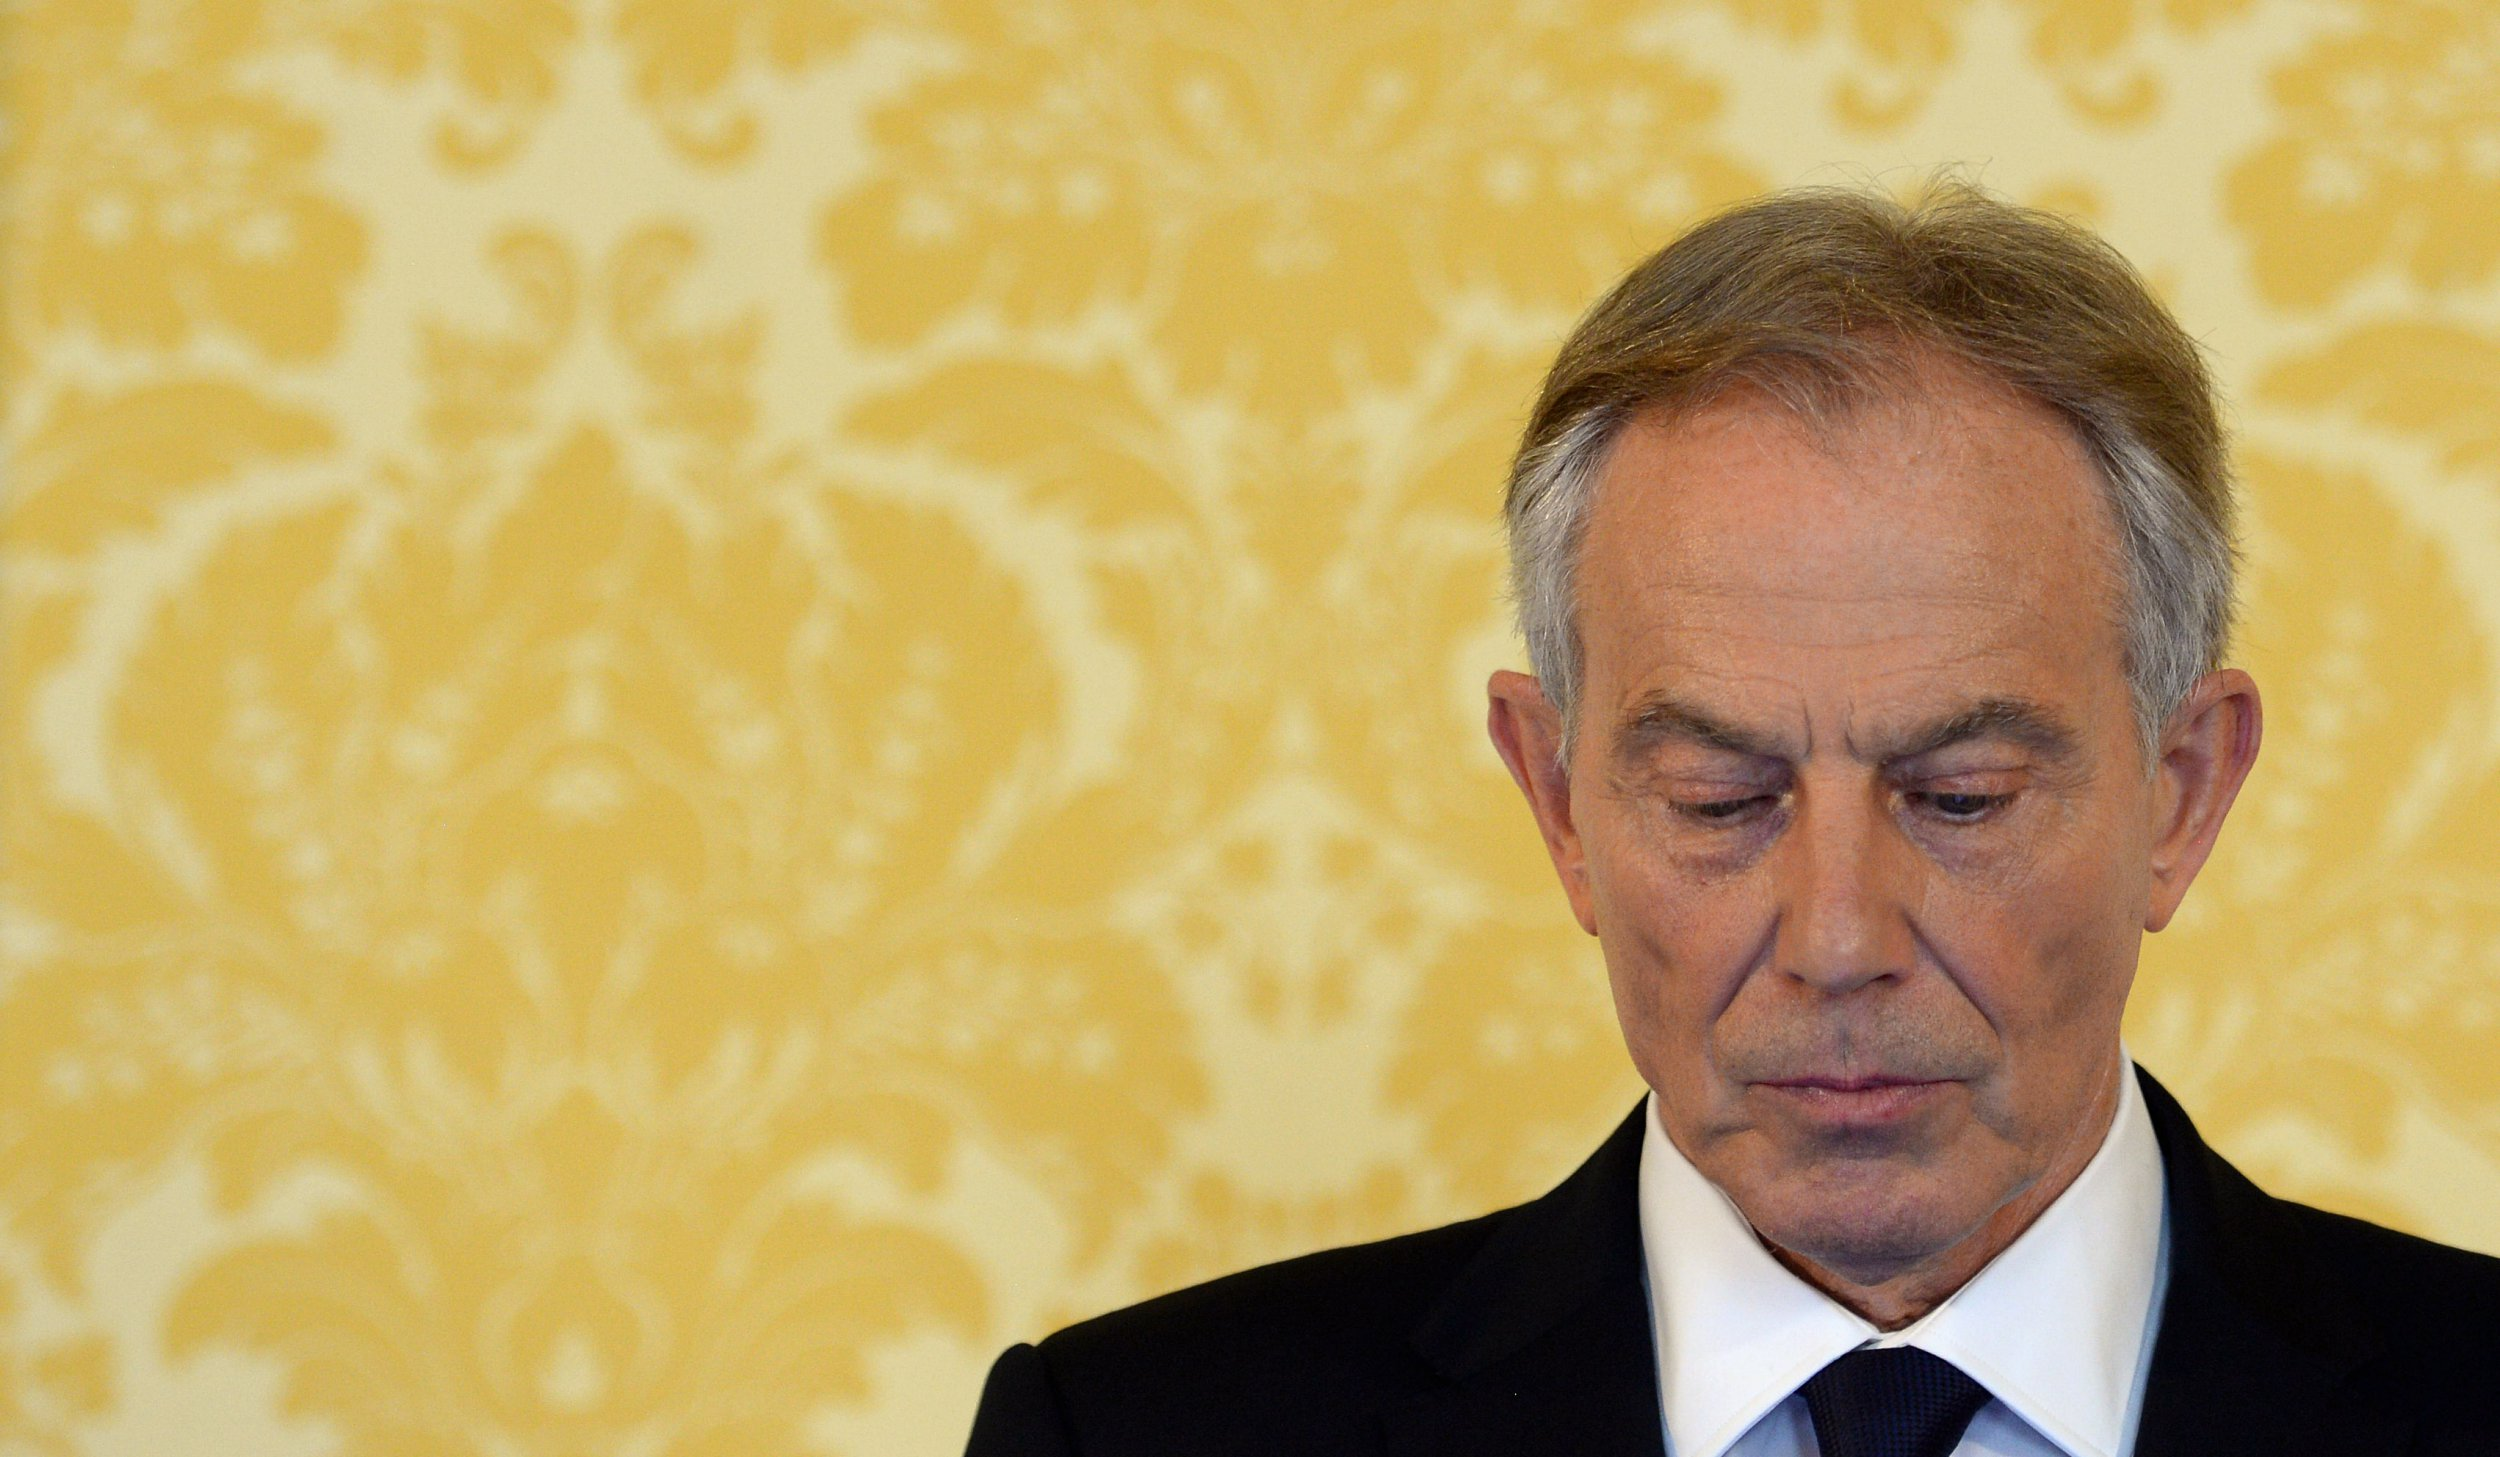 Tony Blair calls for tougher immigration rules to prevent Brexit